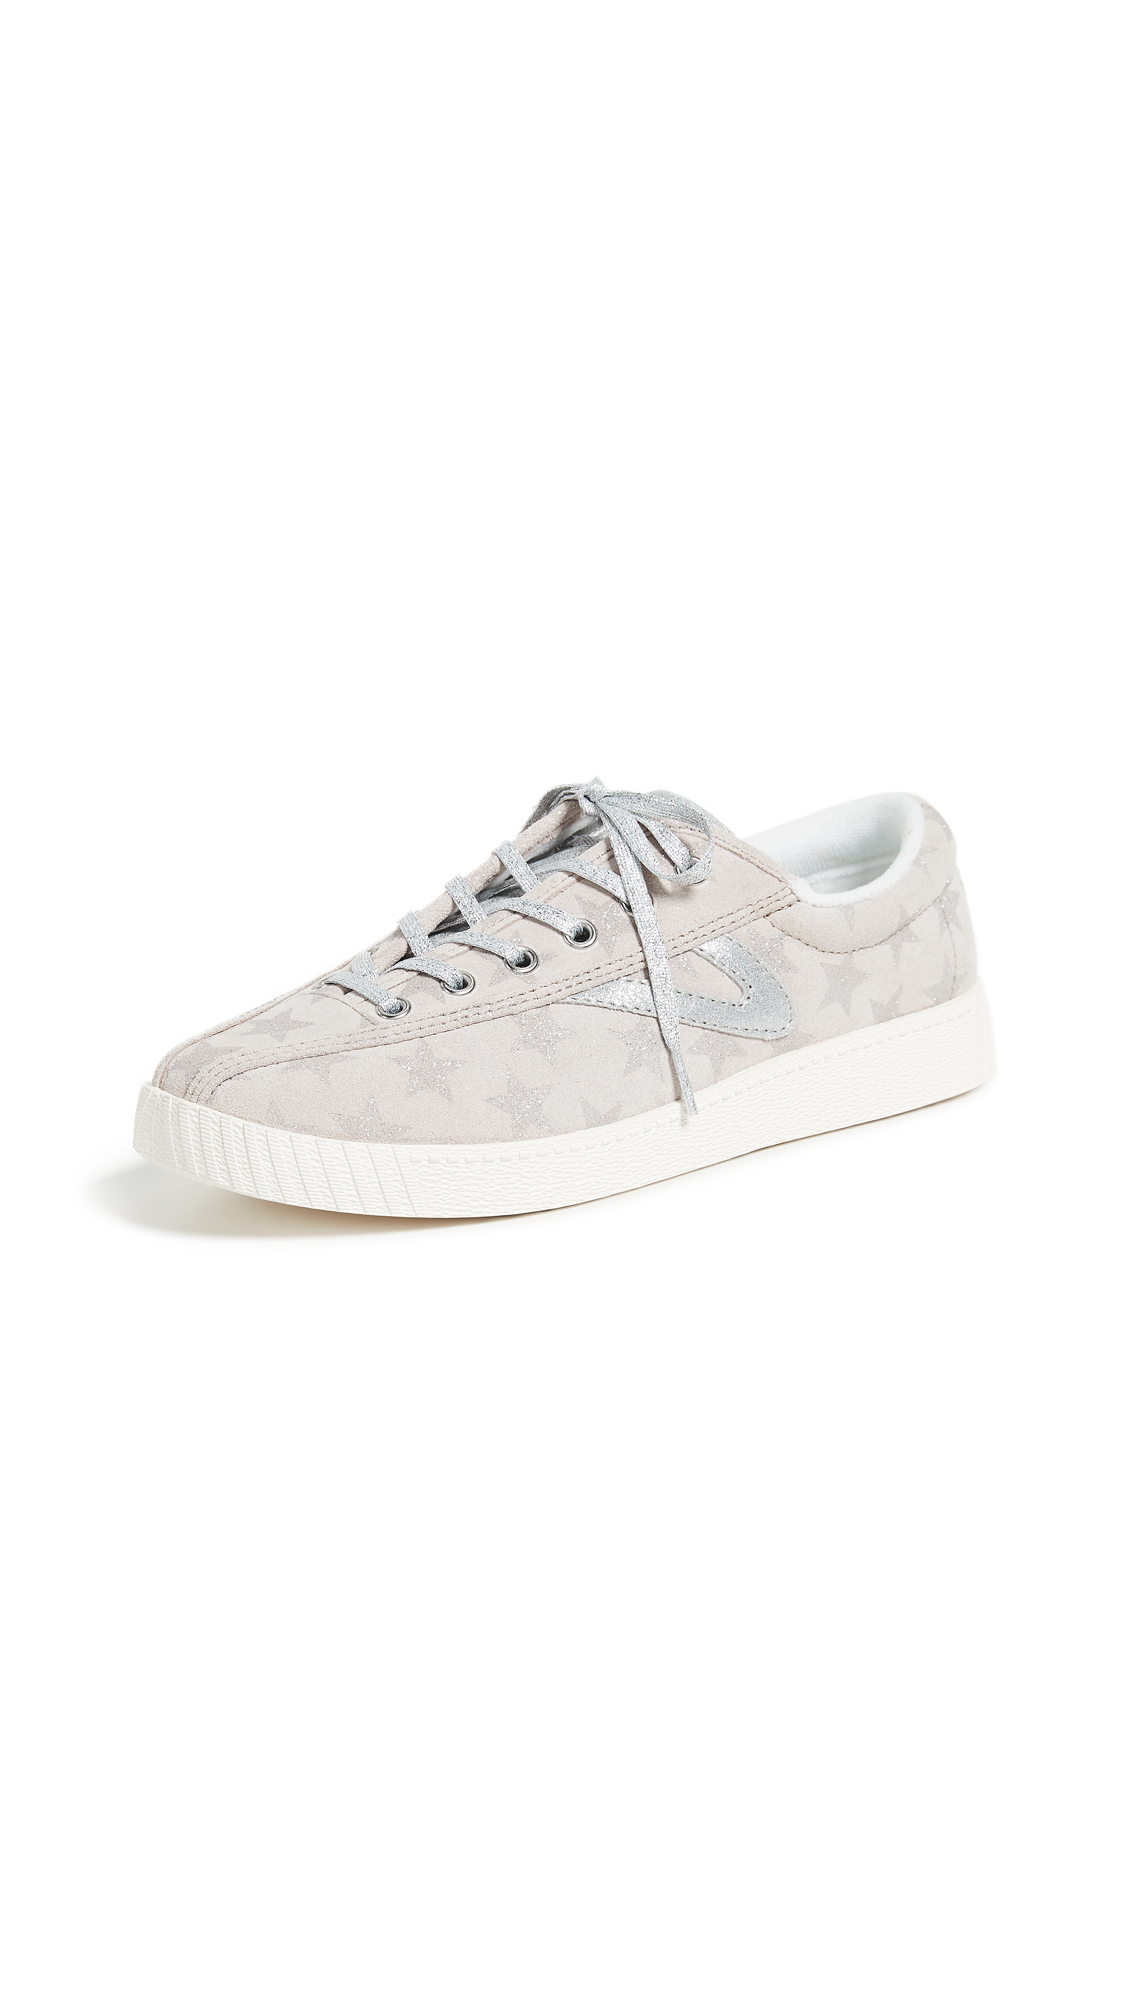 Tretorn Nylite Plus Laceup Sneakers - Birch